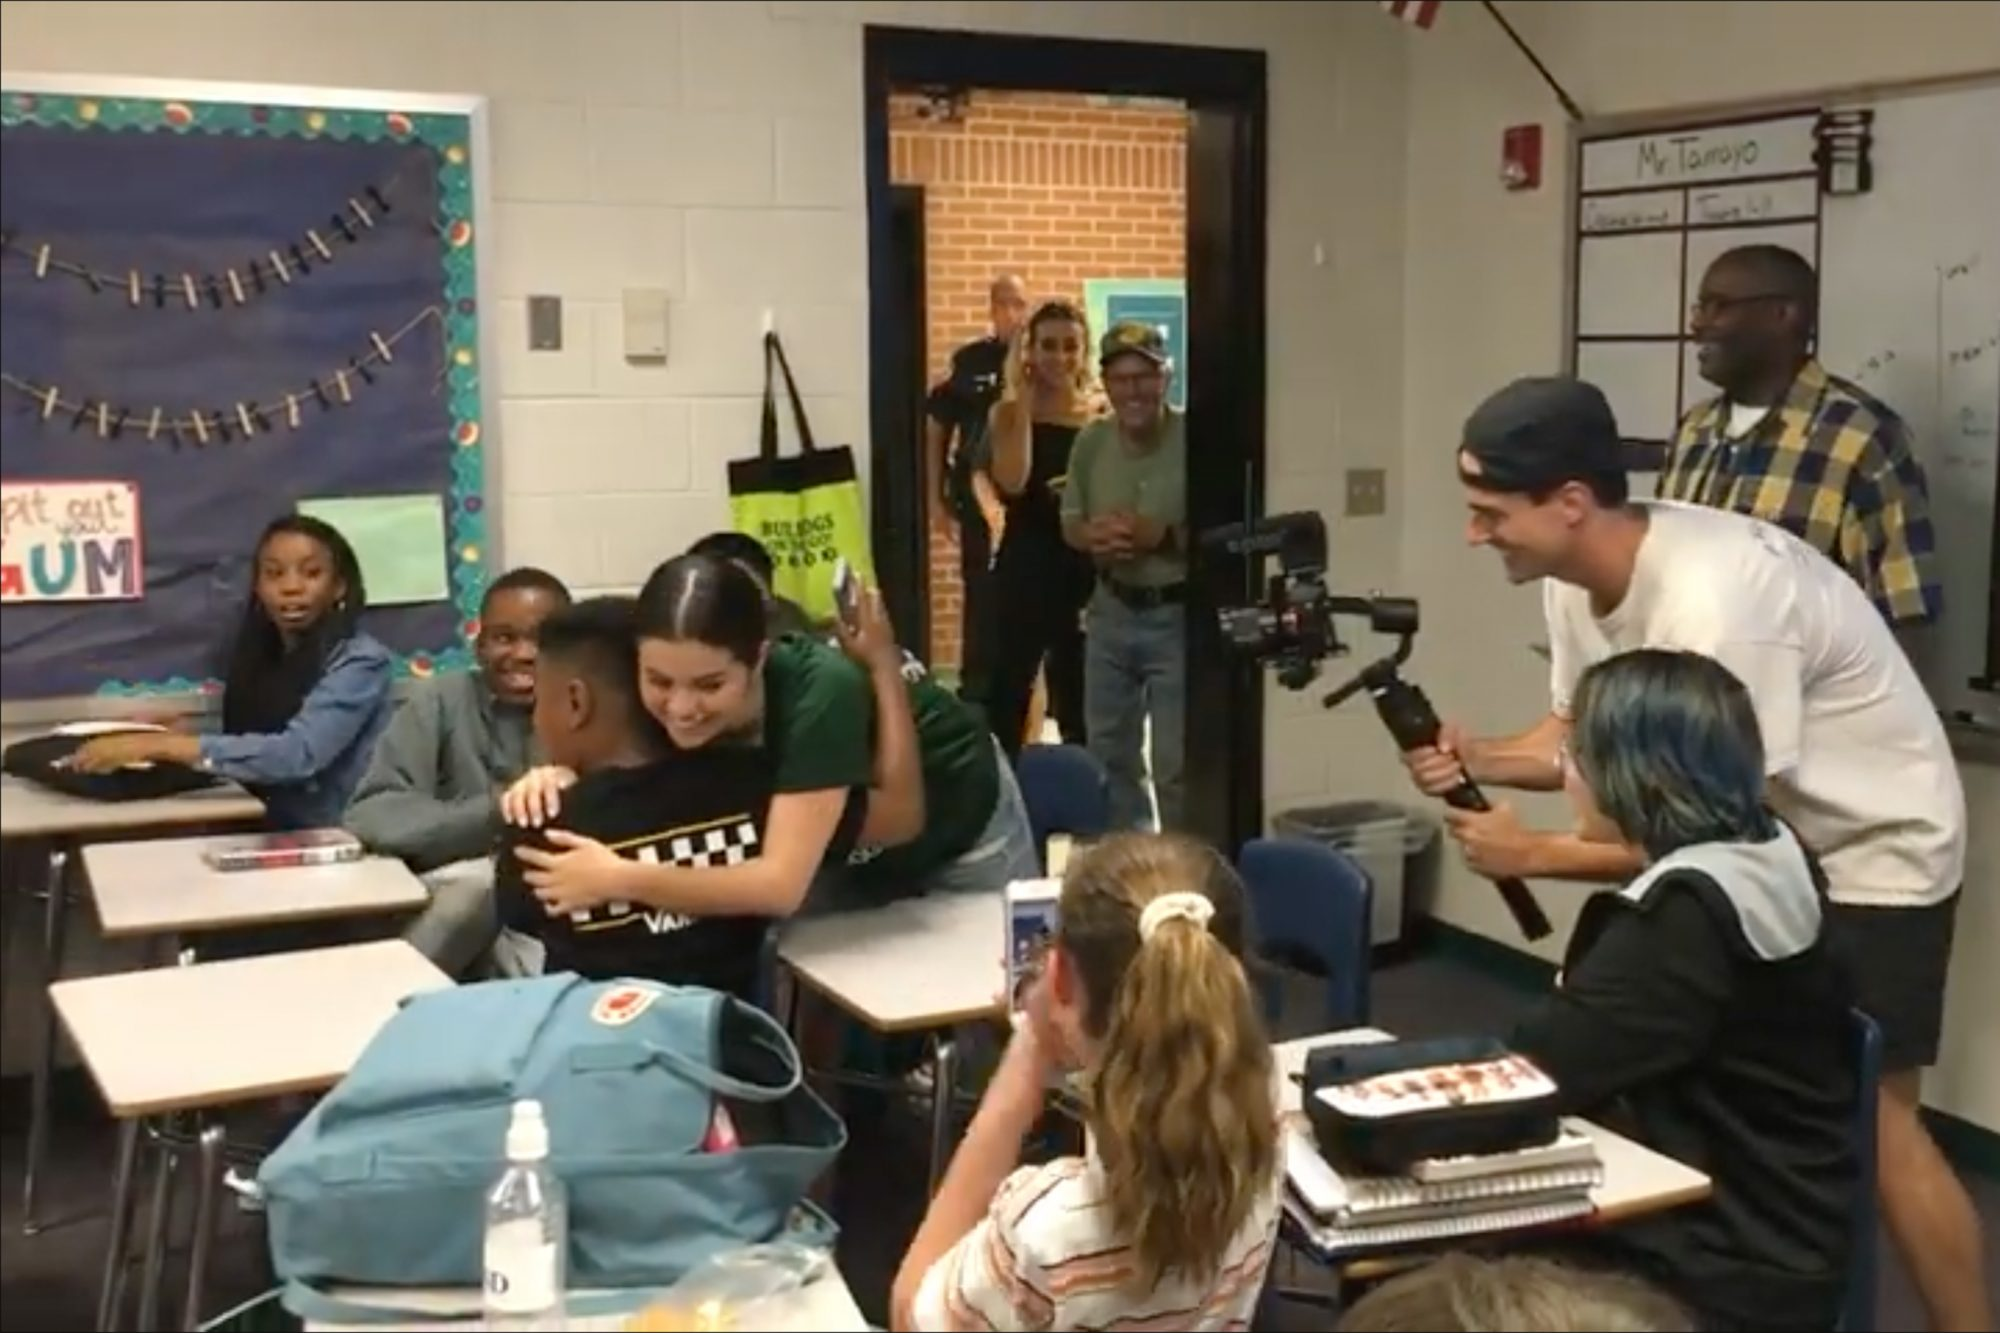 Selena Gomez Makes Surprise Visit at Former School